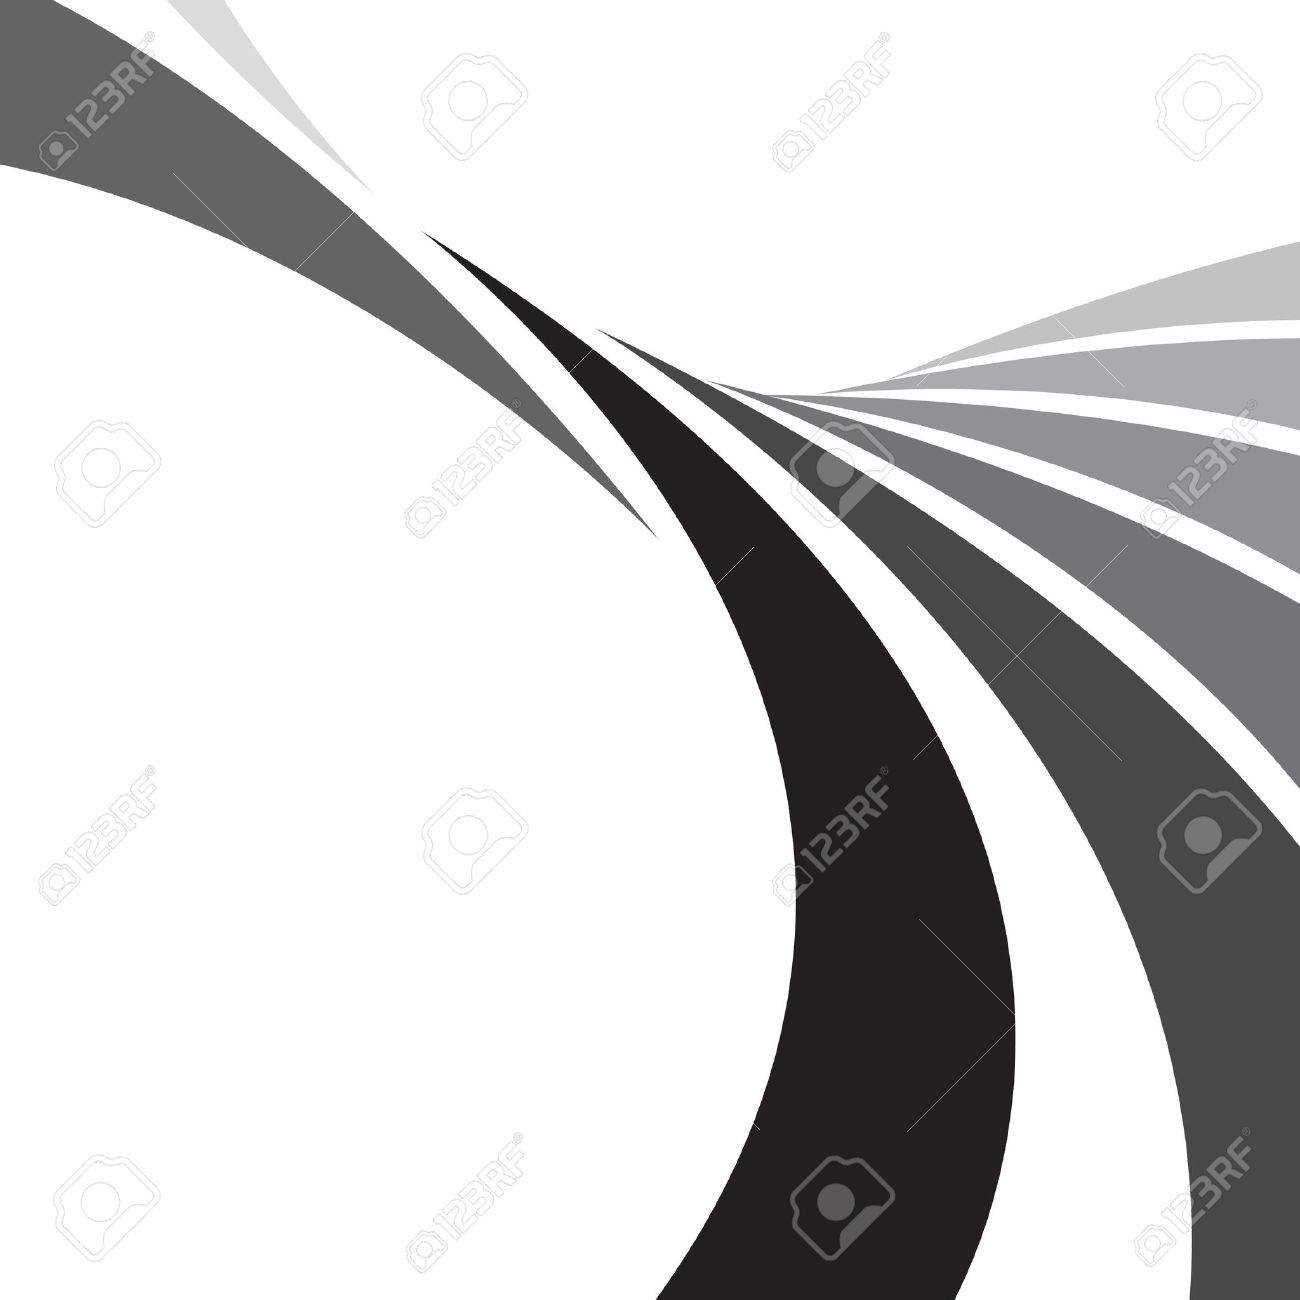 An abstract design template with plenty of copyspace. This vector image makes a great background. Stock Vector - 3916565